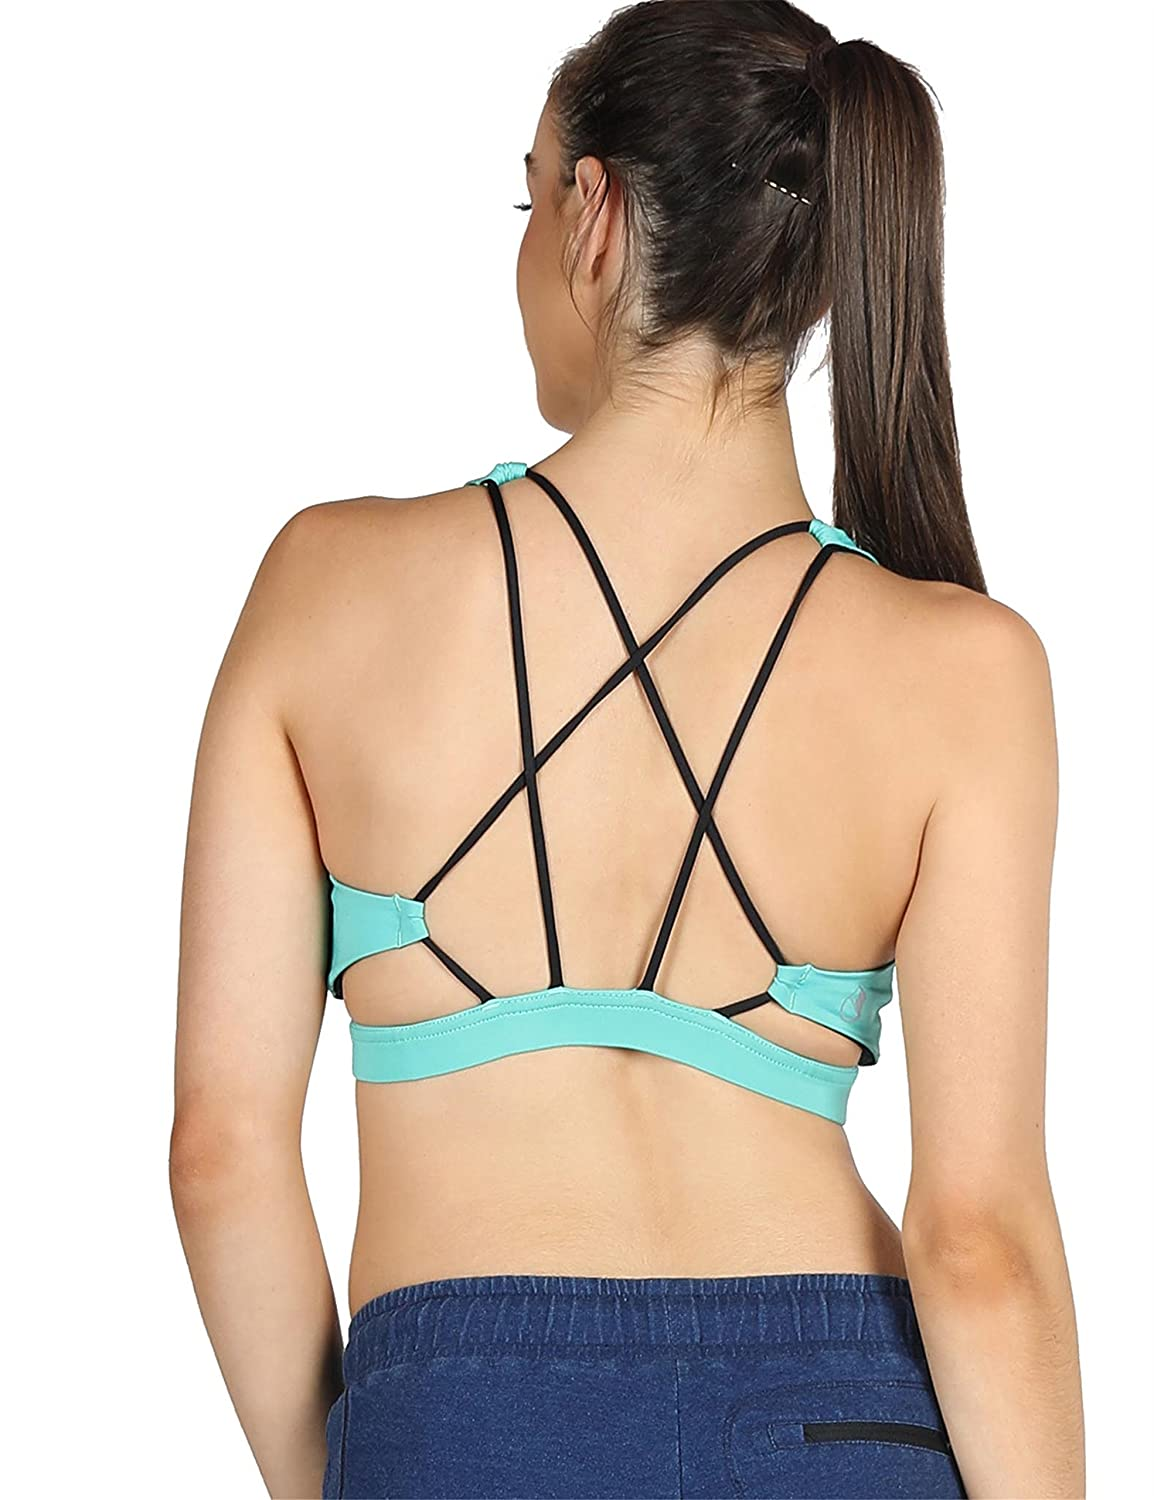 icyzone Sports Bra for Women - Women's Workout Clothes, Strappy Sports Bra, Yoga Tops, Exercise Tops